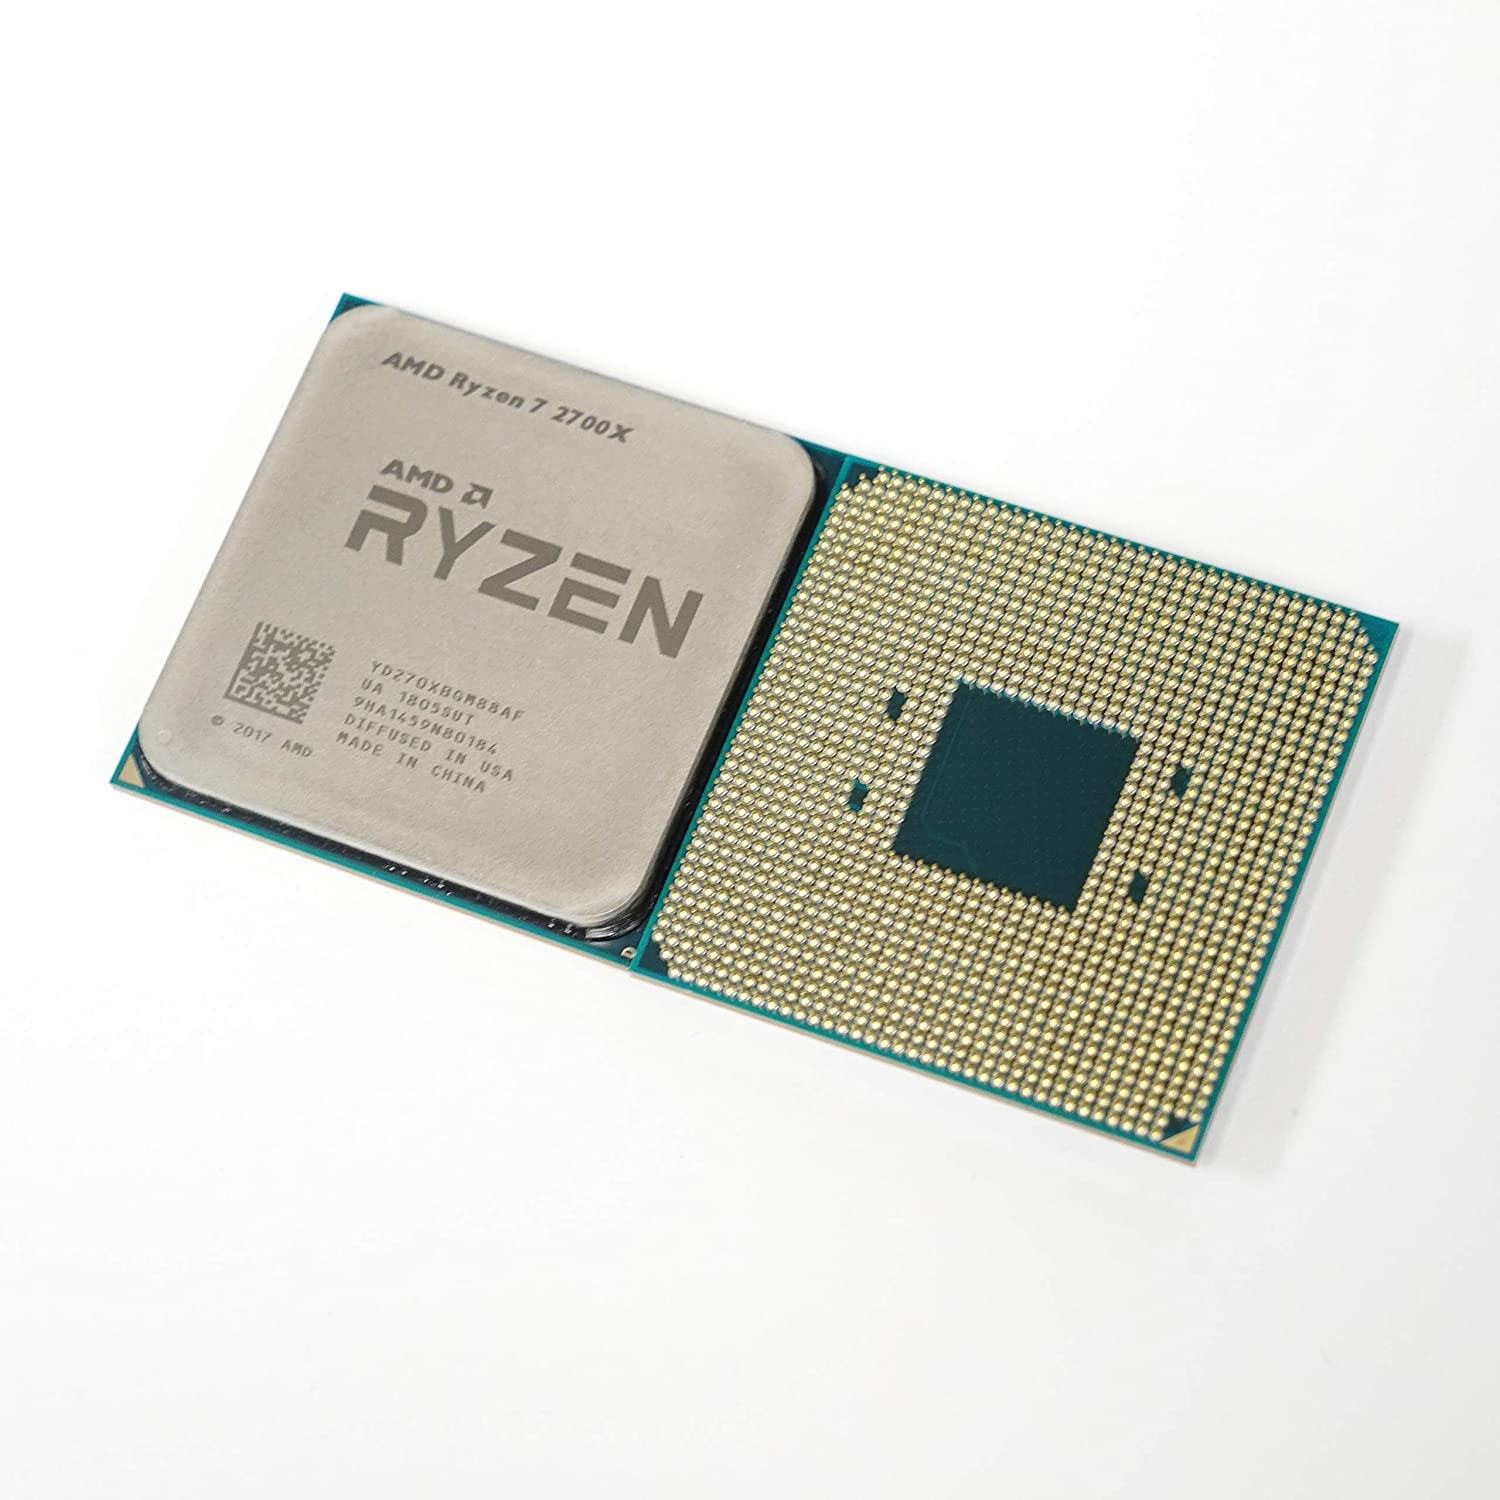 AMD Ryzen 2nd Gen 7 2700X - 4.3 GHz Eight Core (YD270XBGM88AF) Processor OEM VER with Thermal Paste Bundle